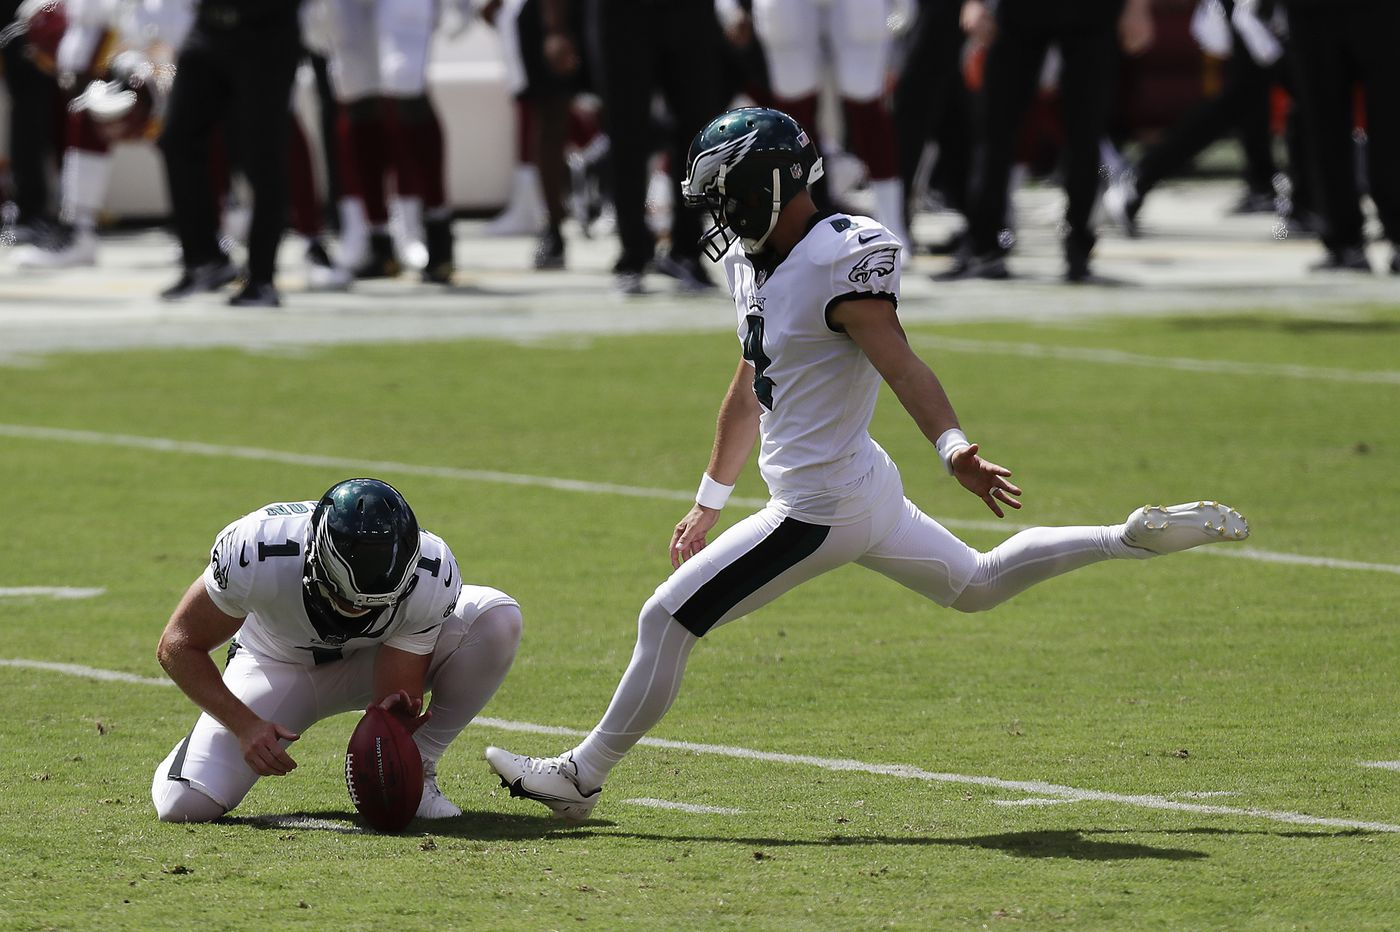 Eagles special teams coordinator Dave Fipp: That miss on the 53-yard field goal wasn't really Jake Elliott's fault